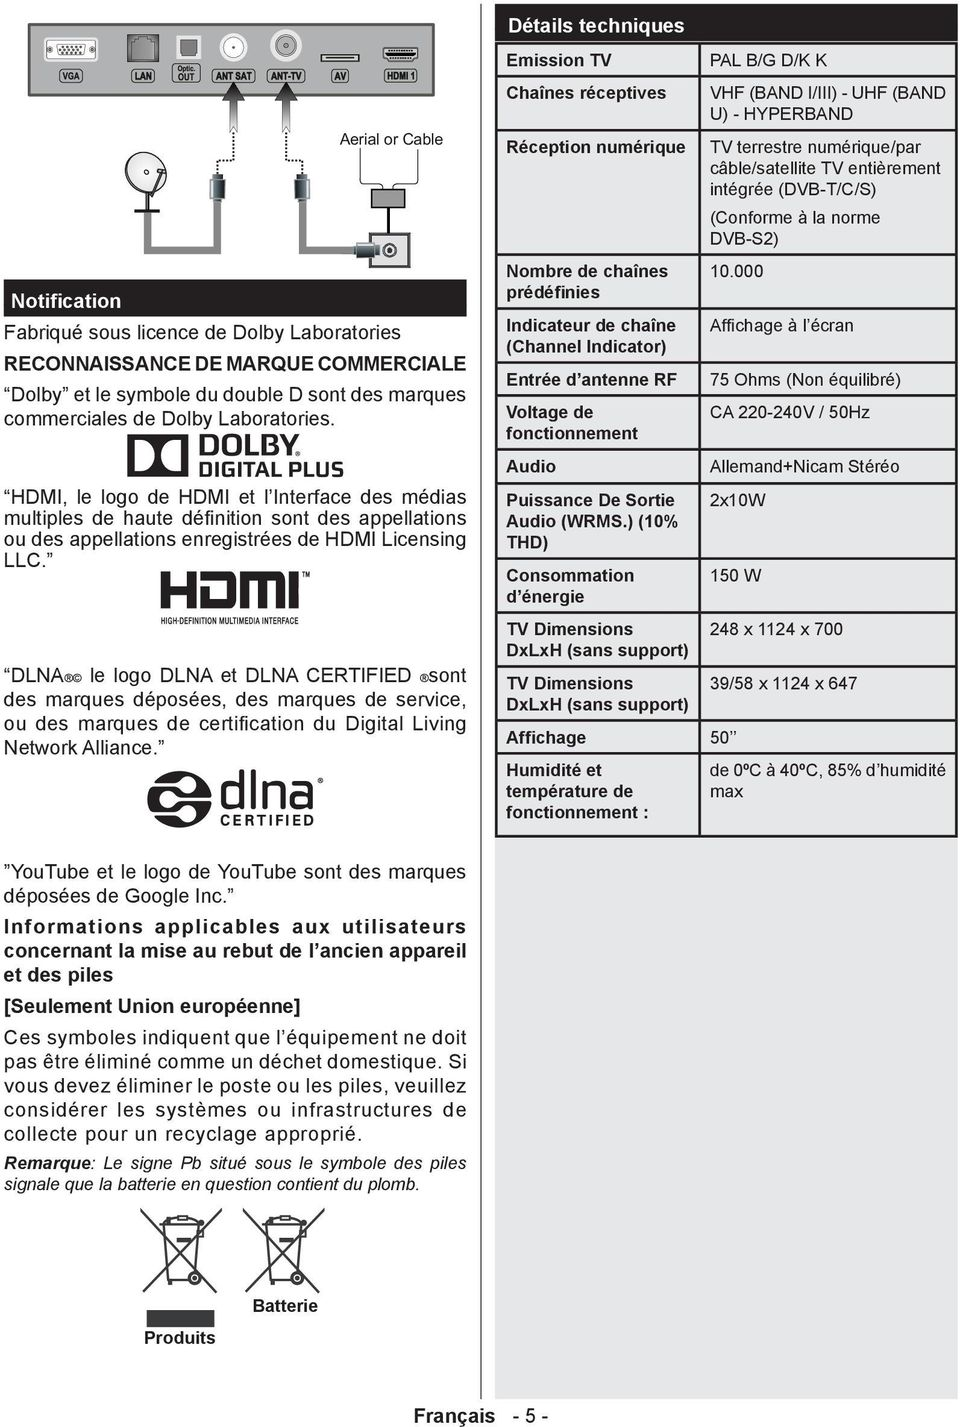 marques commerciales de Dolby Laboratories. HDMI, le logo de HDMI et l Interface des médias multiples de haute définition sont des appellations ou des appellations enregistrées de HDMI Licensing LLC.